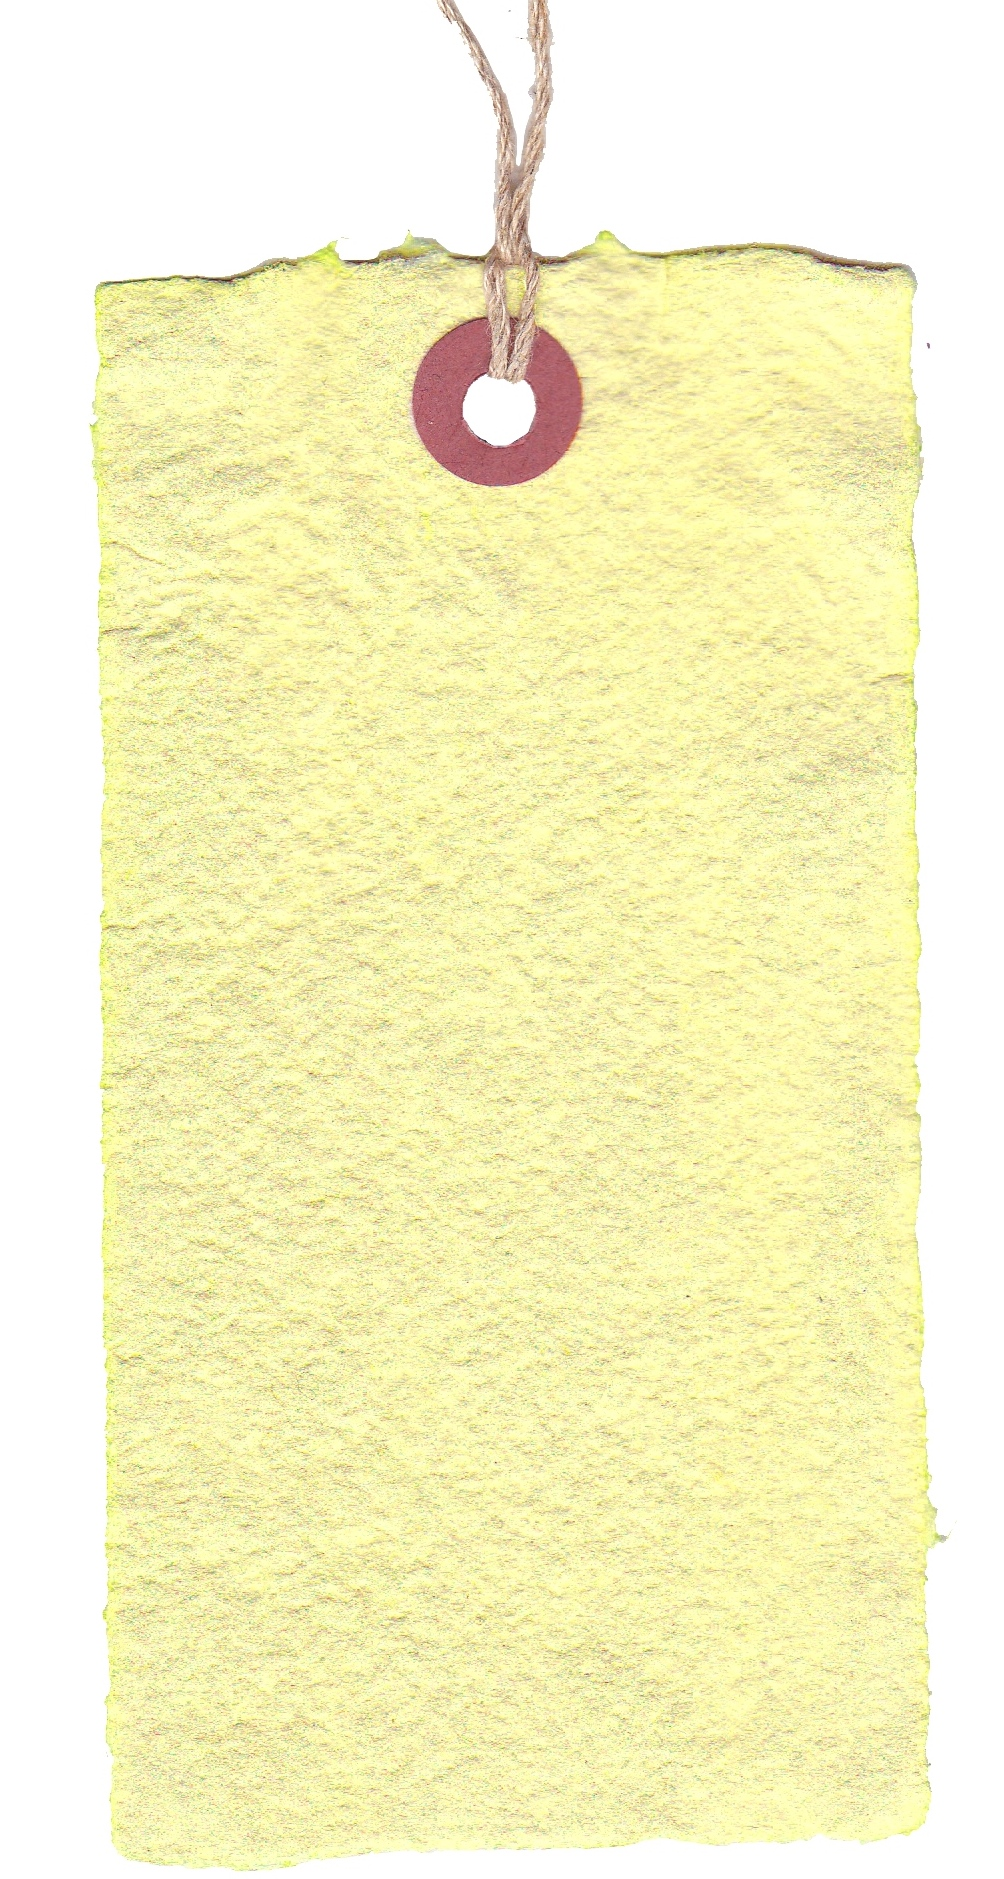 "23024A - 3-3/4""X1-7/8"" HEMP PAPER TAG LIME"